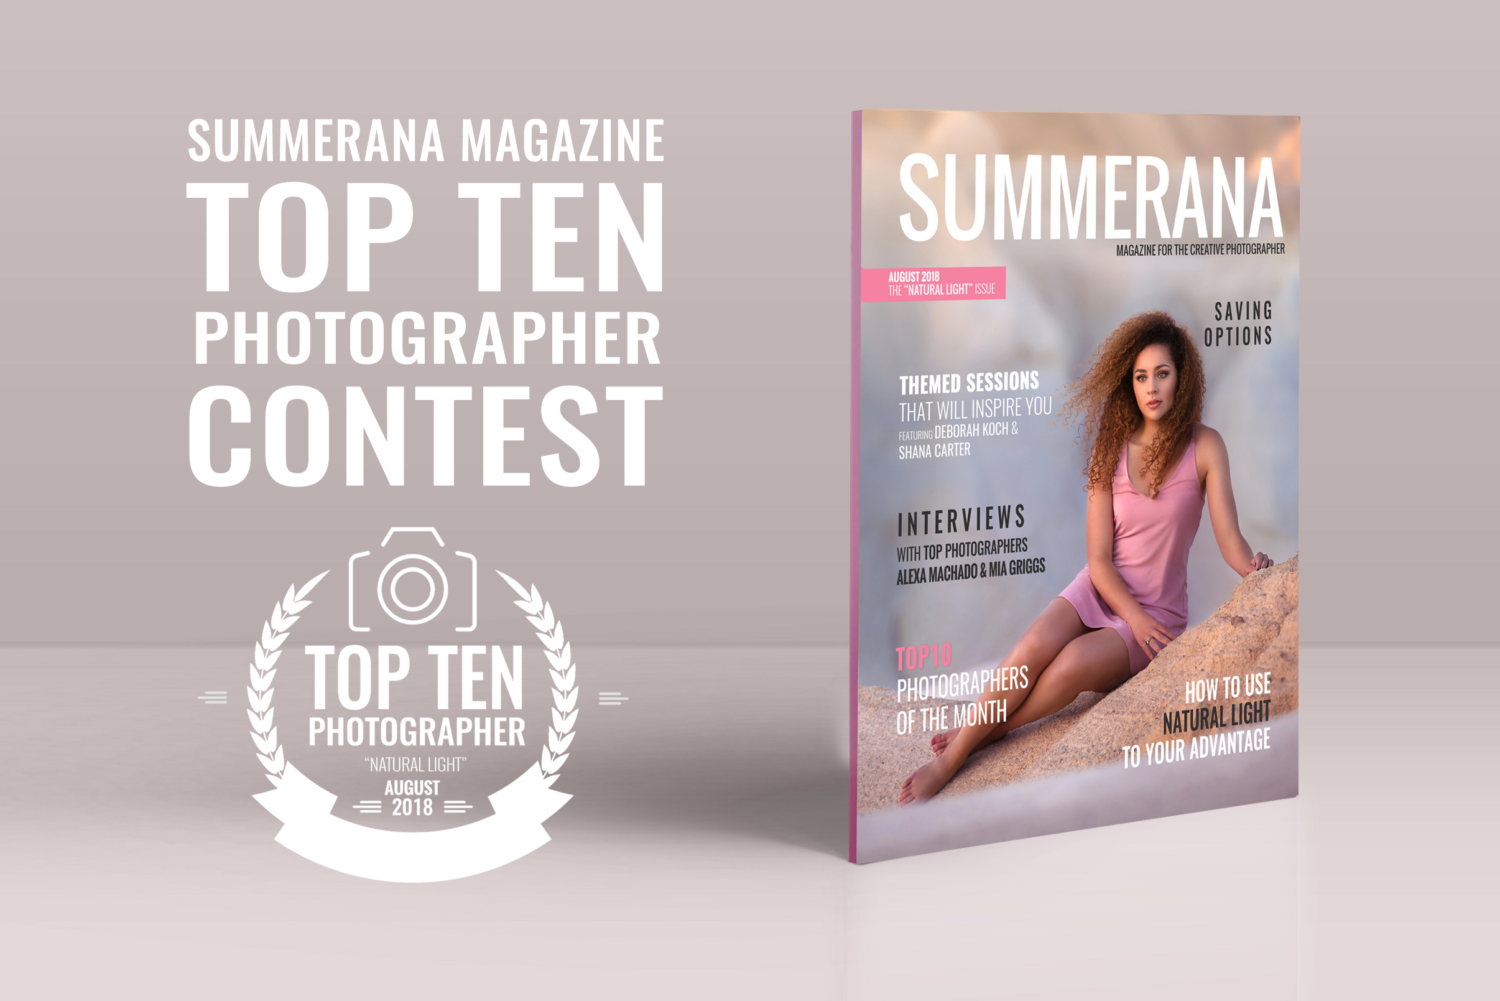 summerana-photography-magazine-for-photographers-who-love-photoshop-1.png